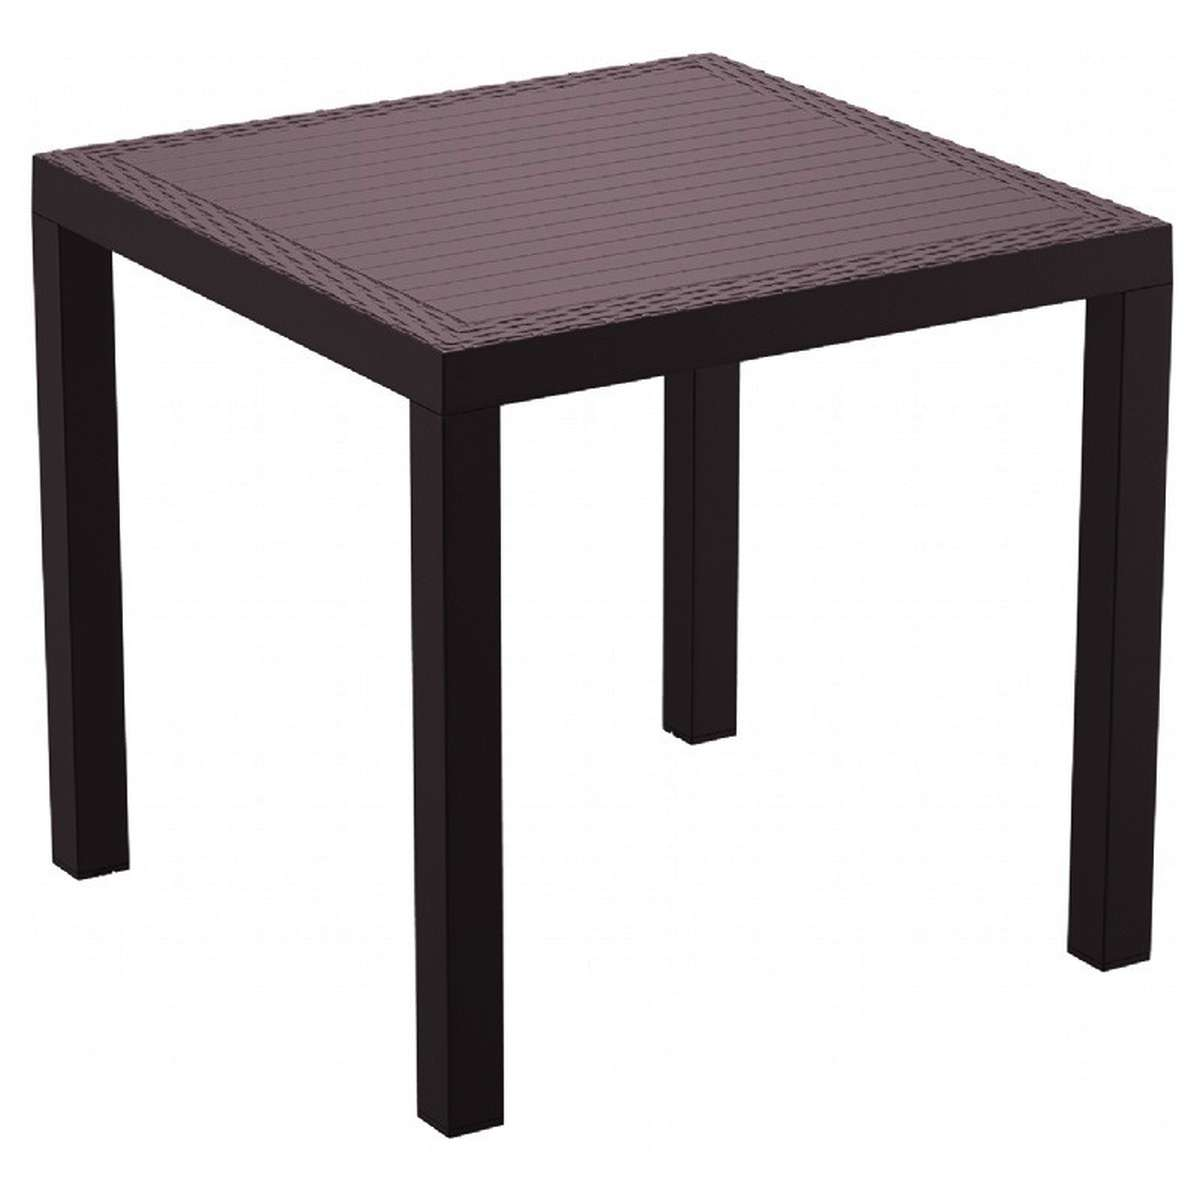 Compamia Orlando Resin Wickerlook Square Dining Table 31 Inches